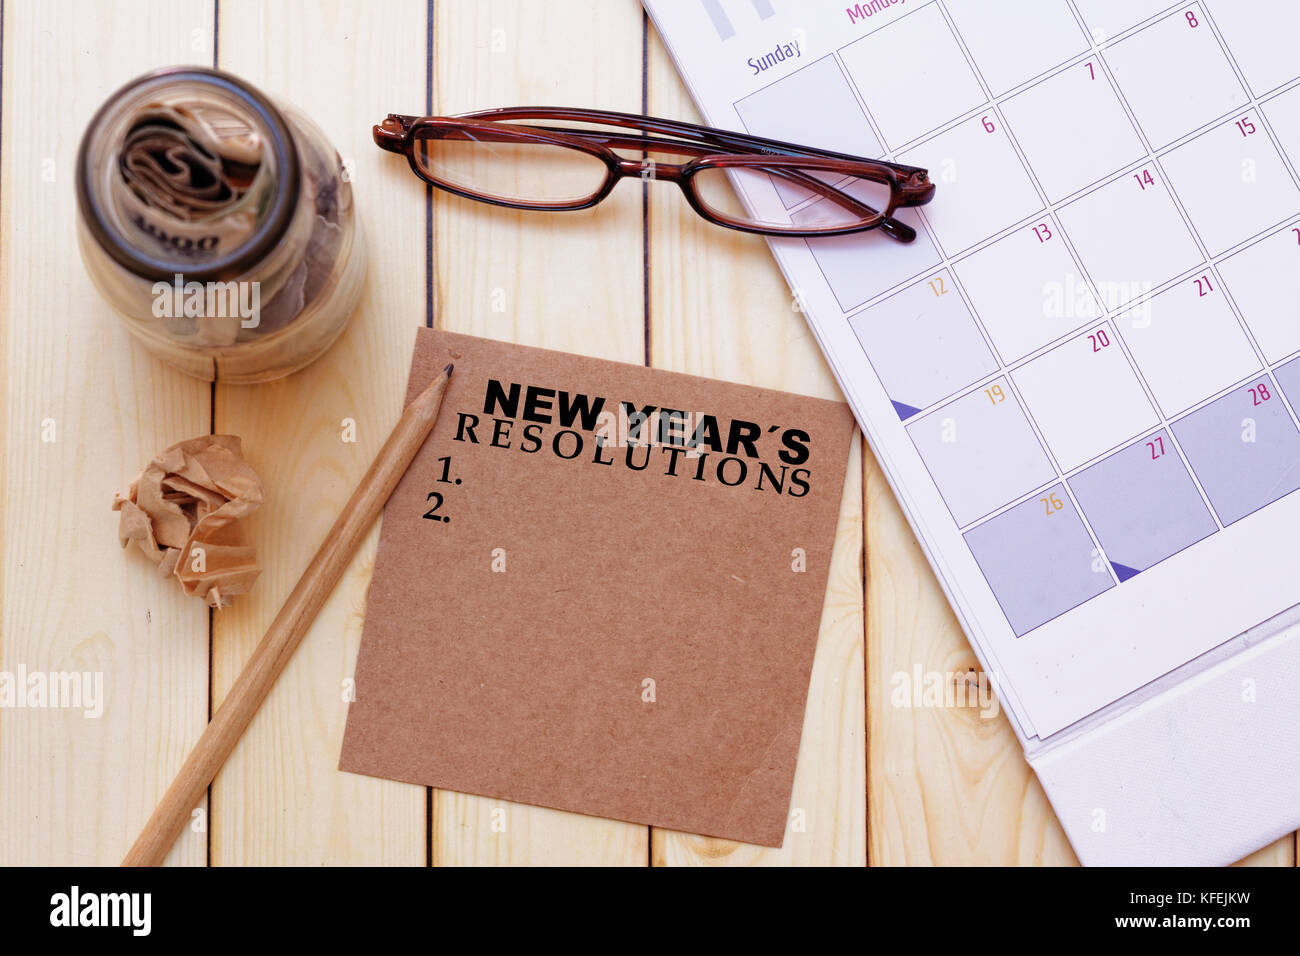 new years resolutions concept with eye glassescalendar pencilcrumpled paper and a